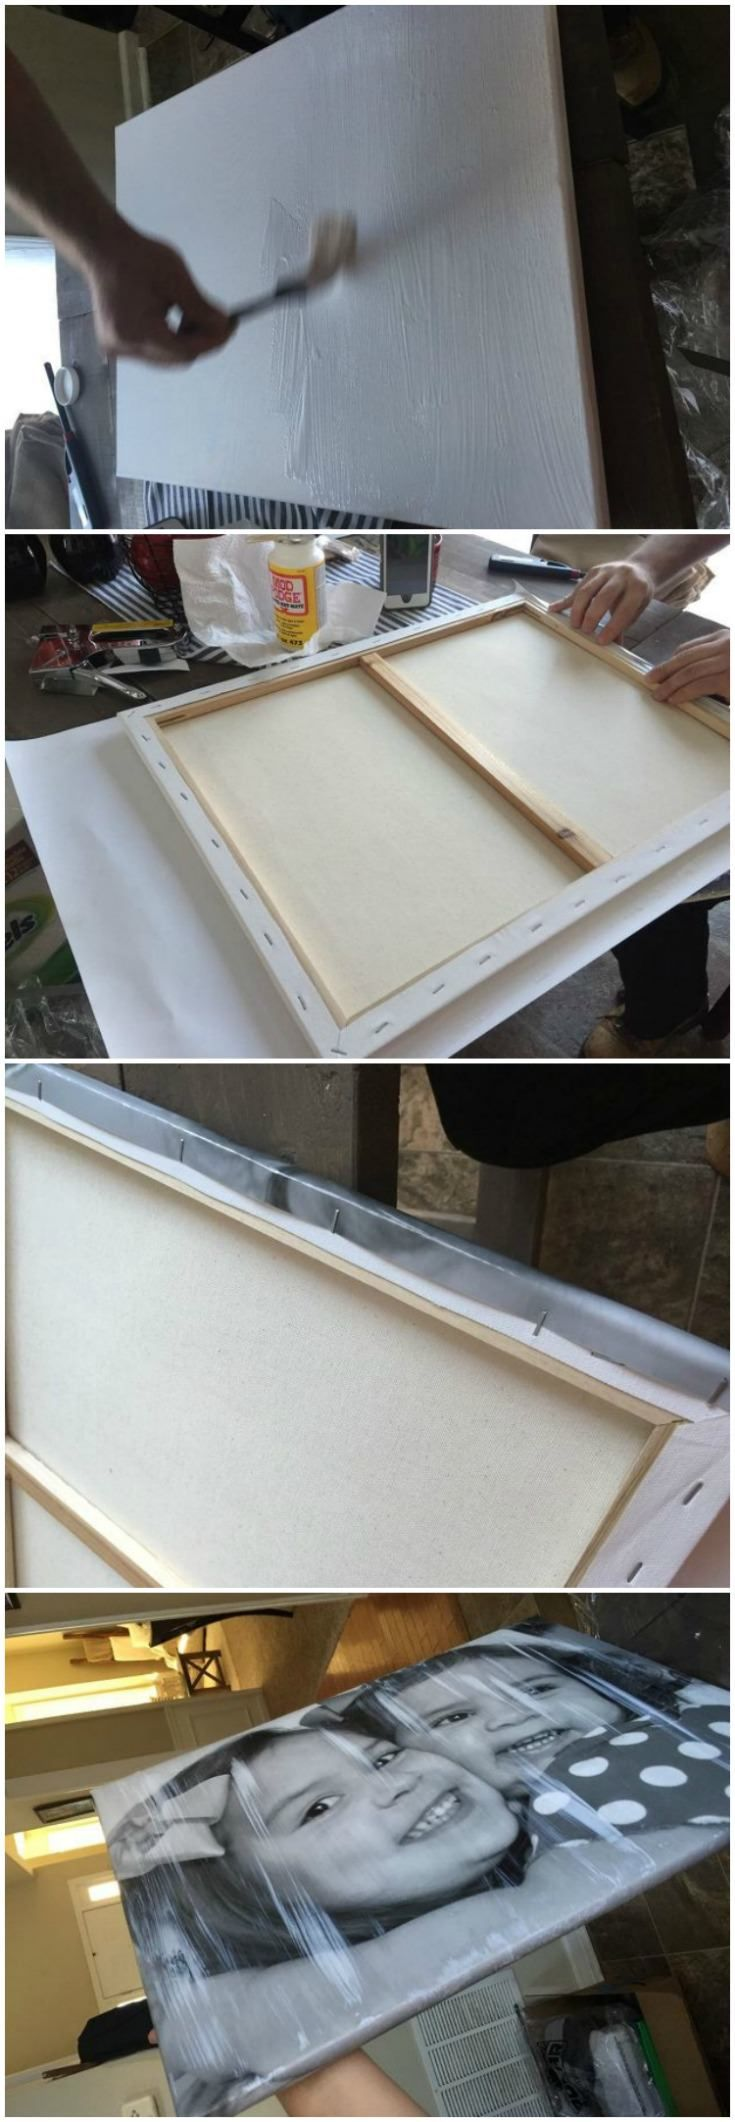 decor hacks this is the best way to attach photos to canvas with mod podge it 39 s easy. Black Bedroom Furniture Sets. Home Design Ideas